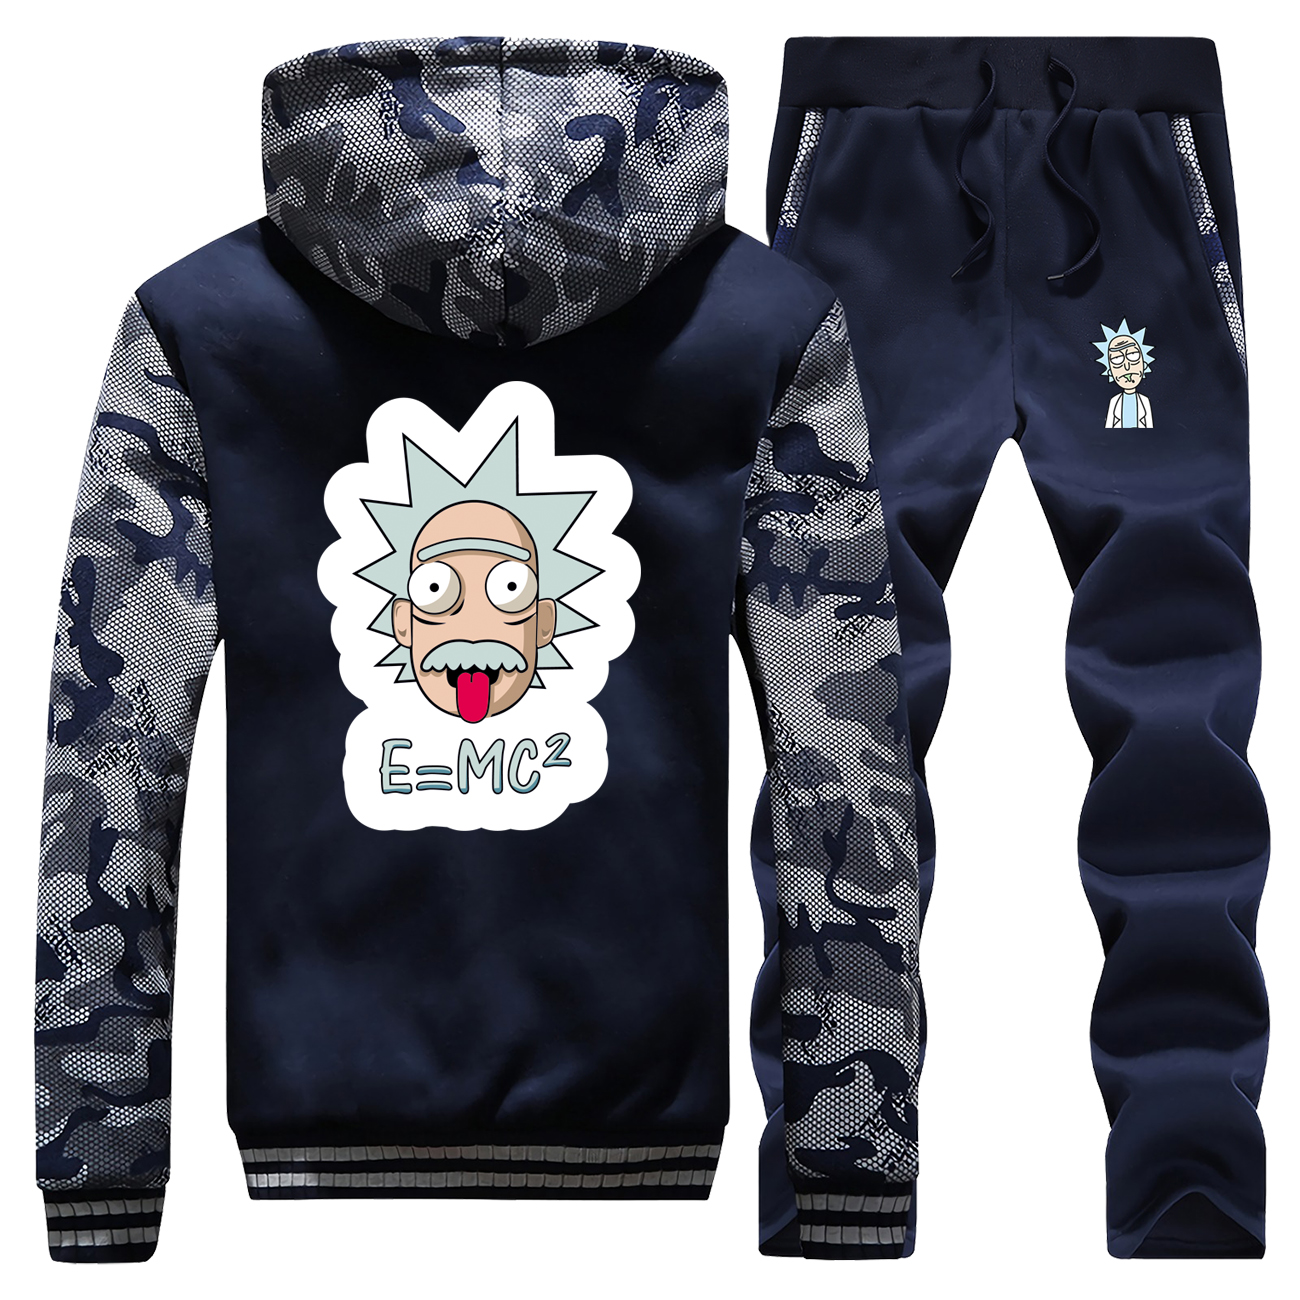 2019 Winter Hot Sale Rick And Morty Cartoon Streetwear Coat Thick Suit Warm Jackets Camouflage Fashion Hooded+Pants 2 Piece Set